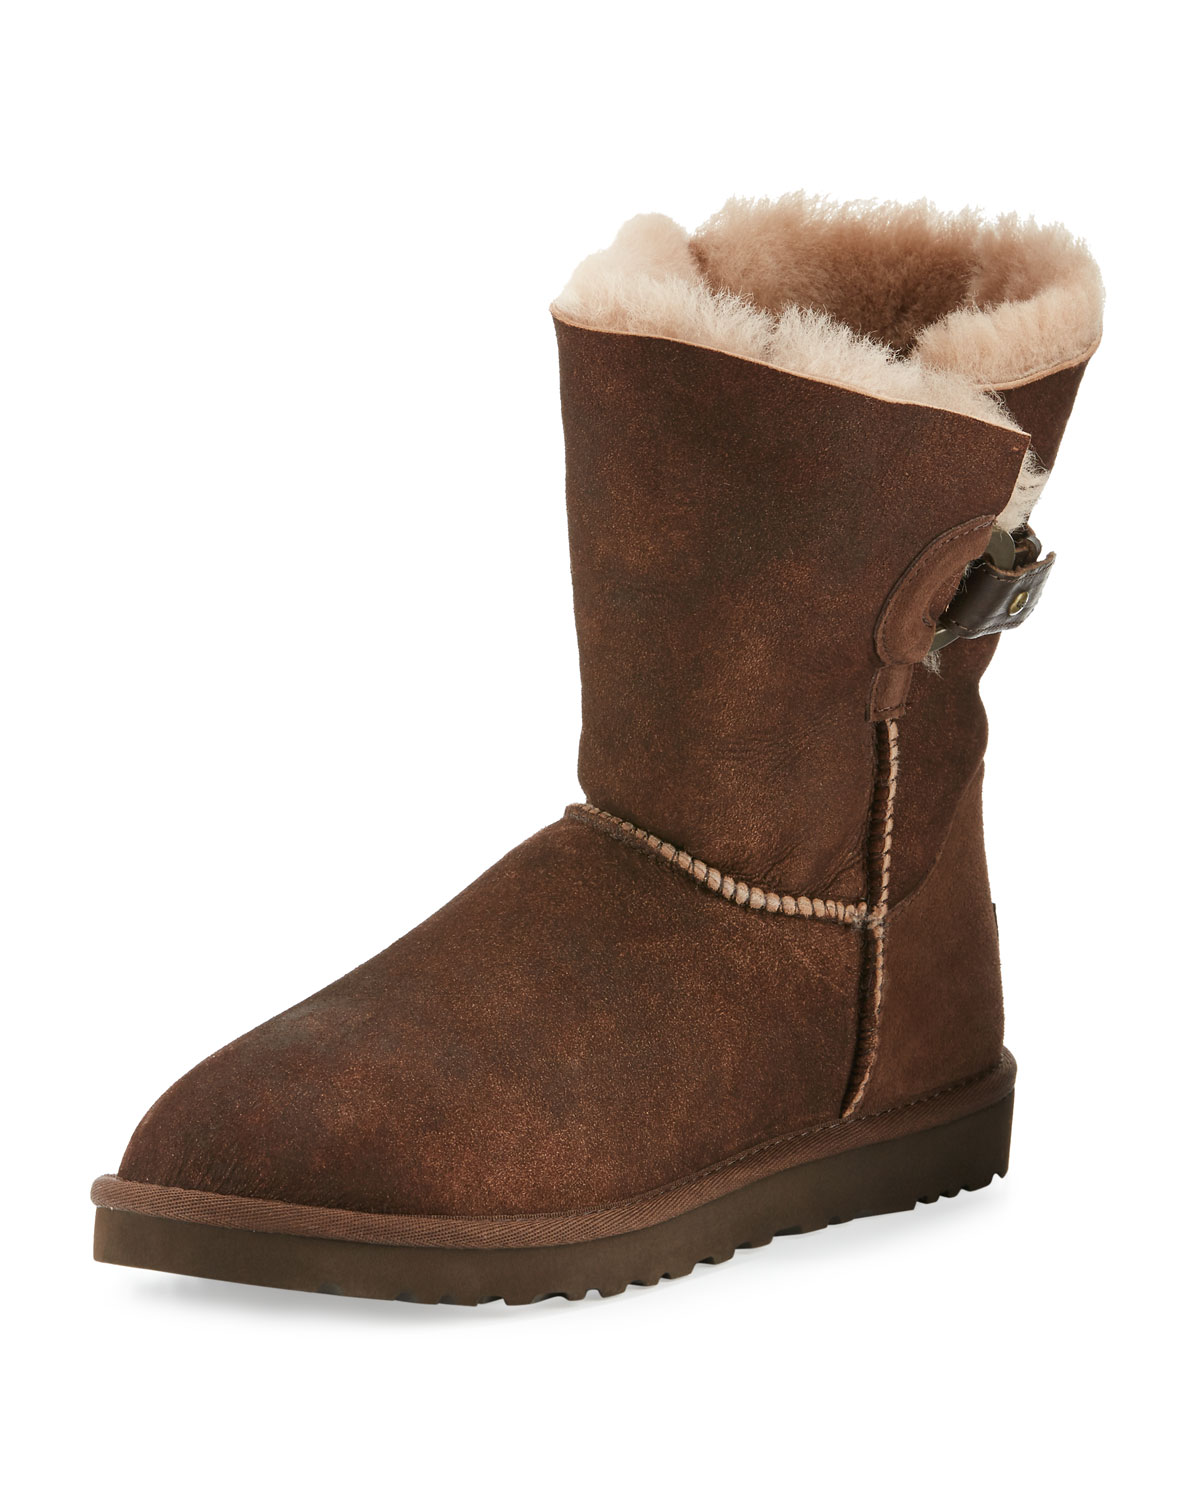 genuine ugg boots ireland